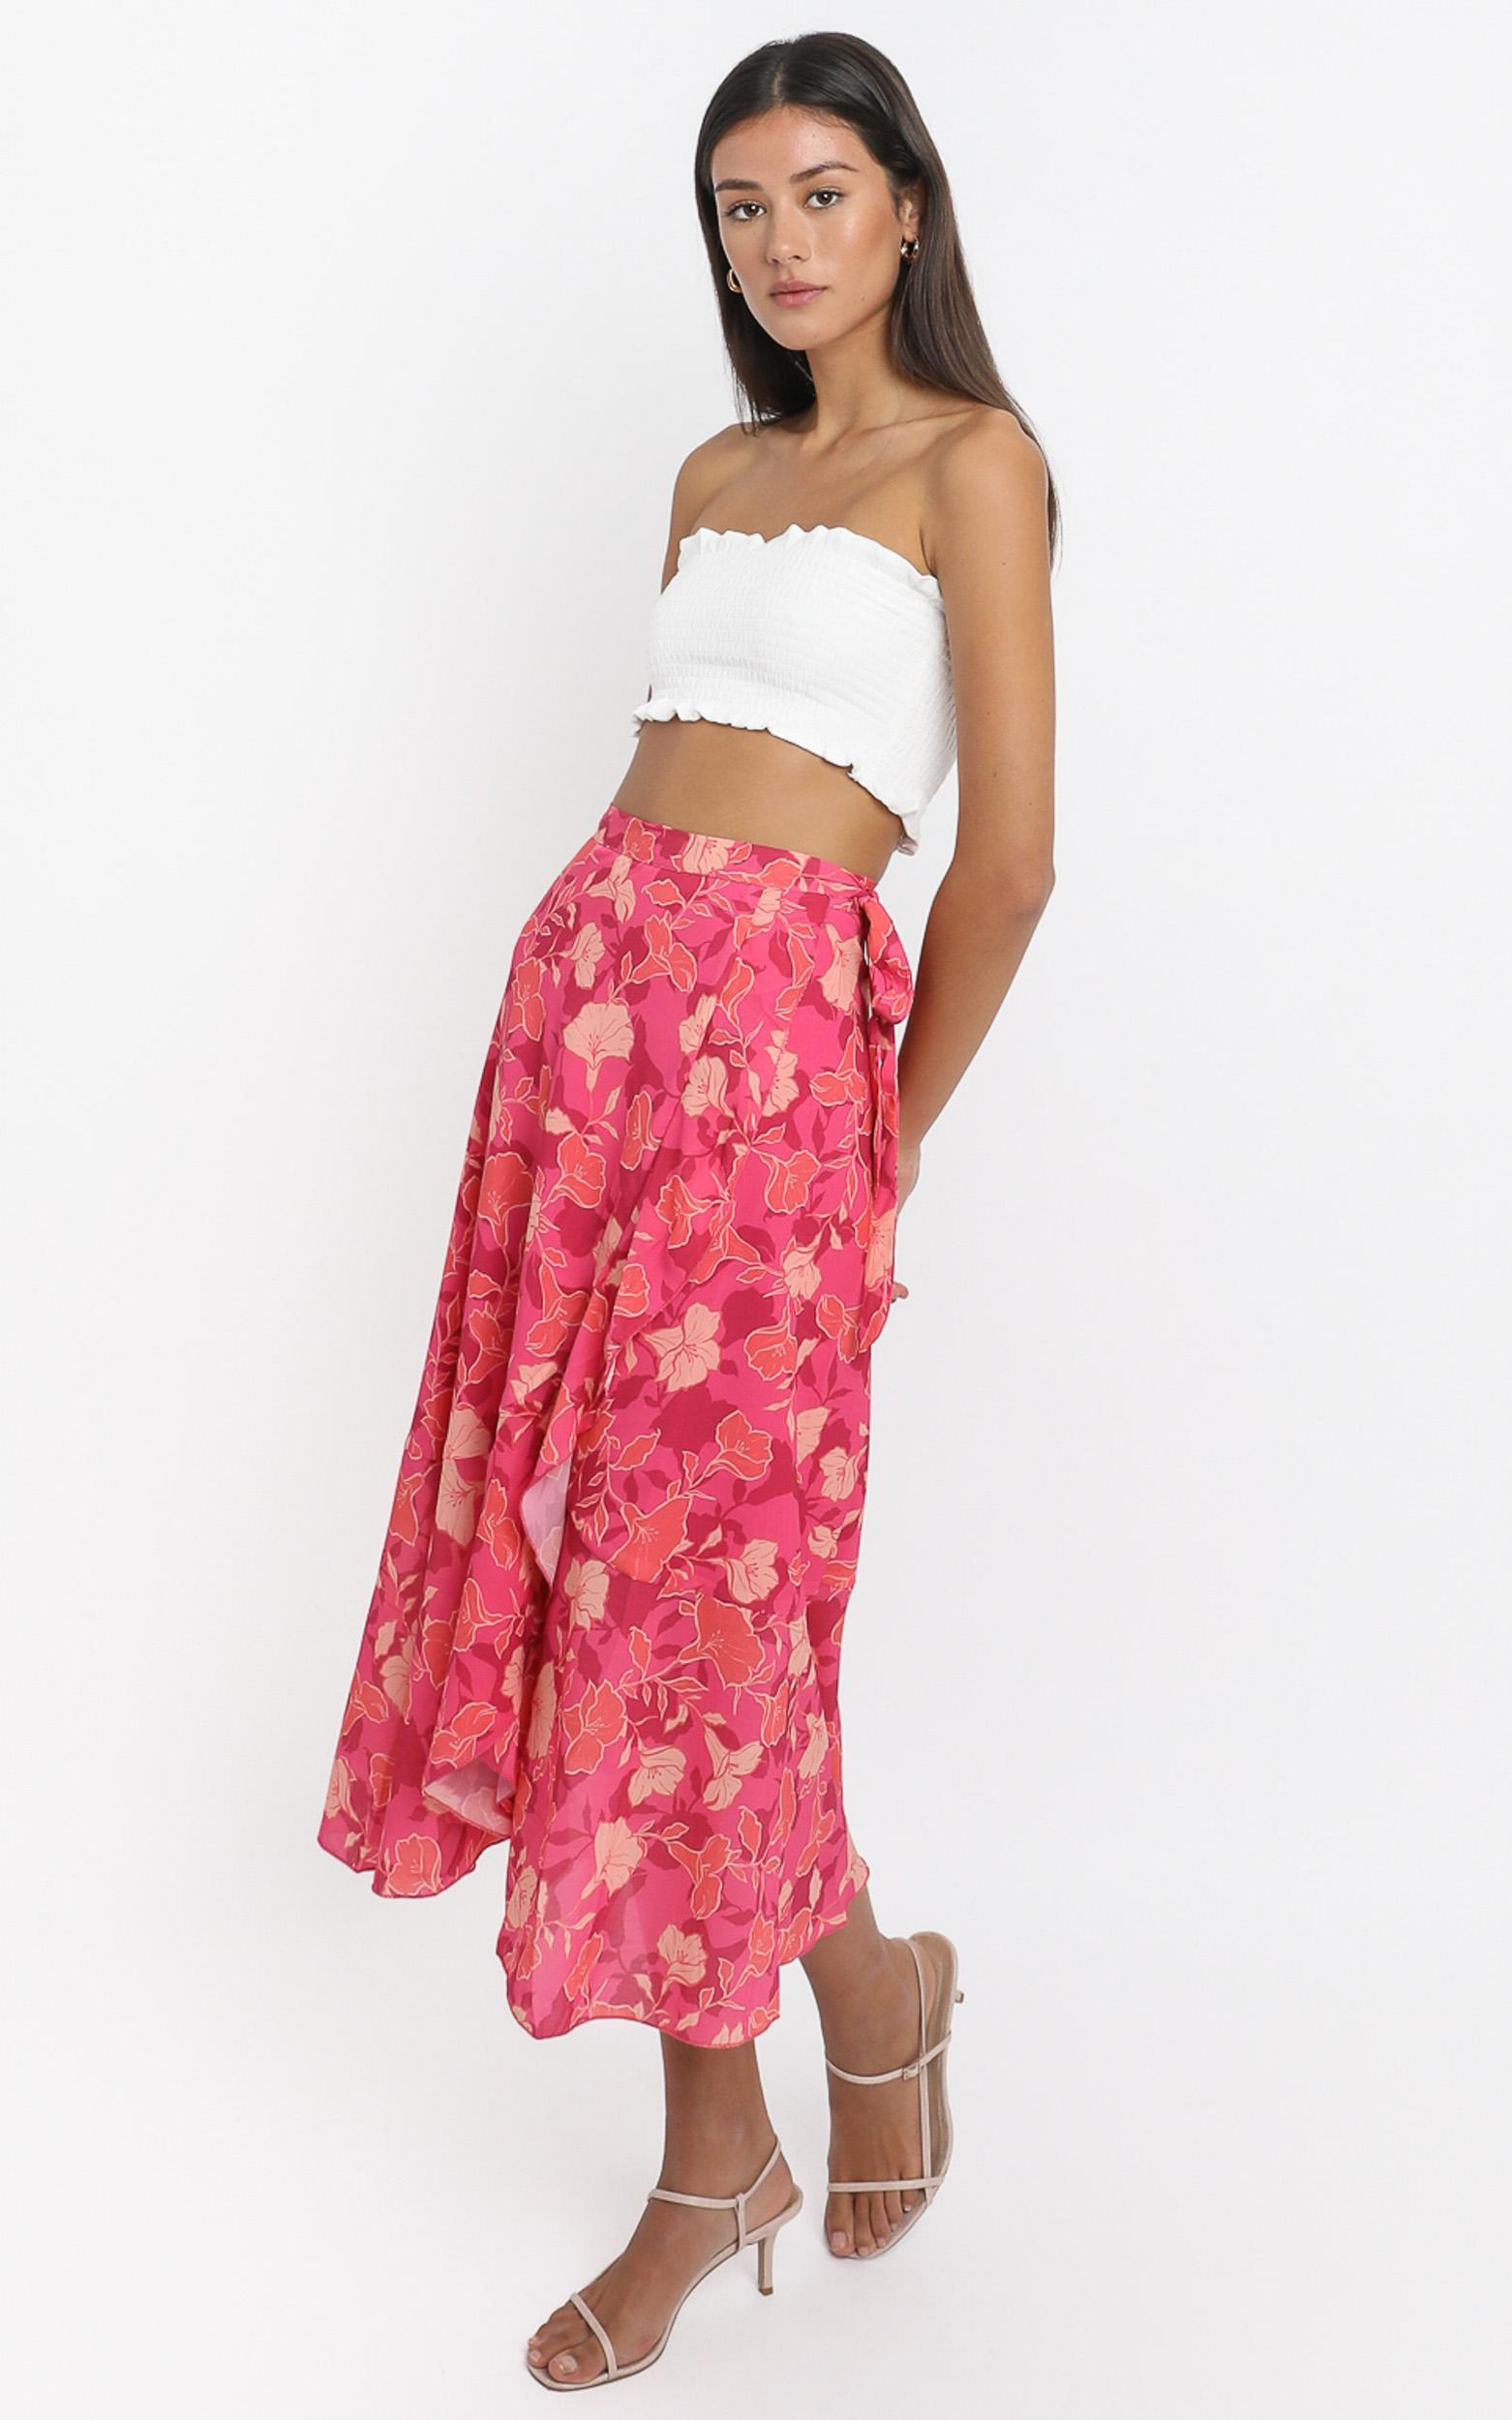 add to the mix Skirt  In berry floral - 20 (XXXXL), PNK13, hi-res image number null